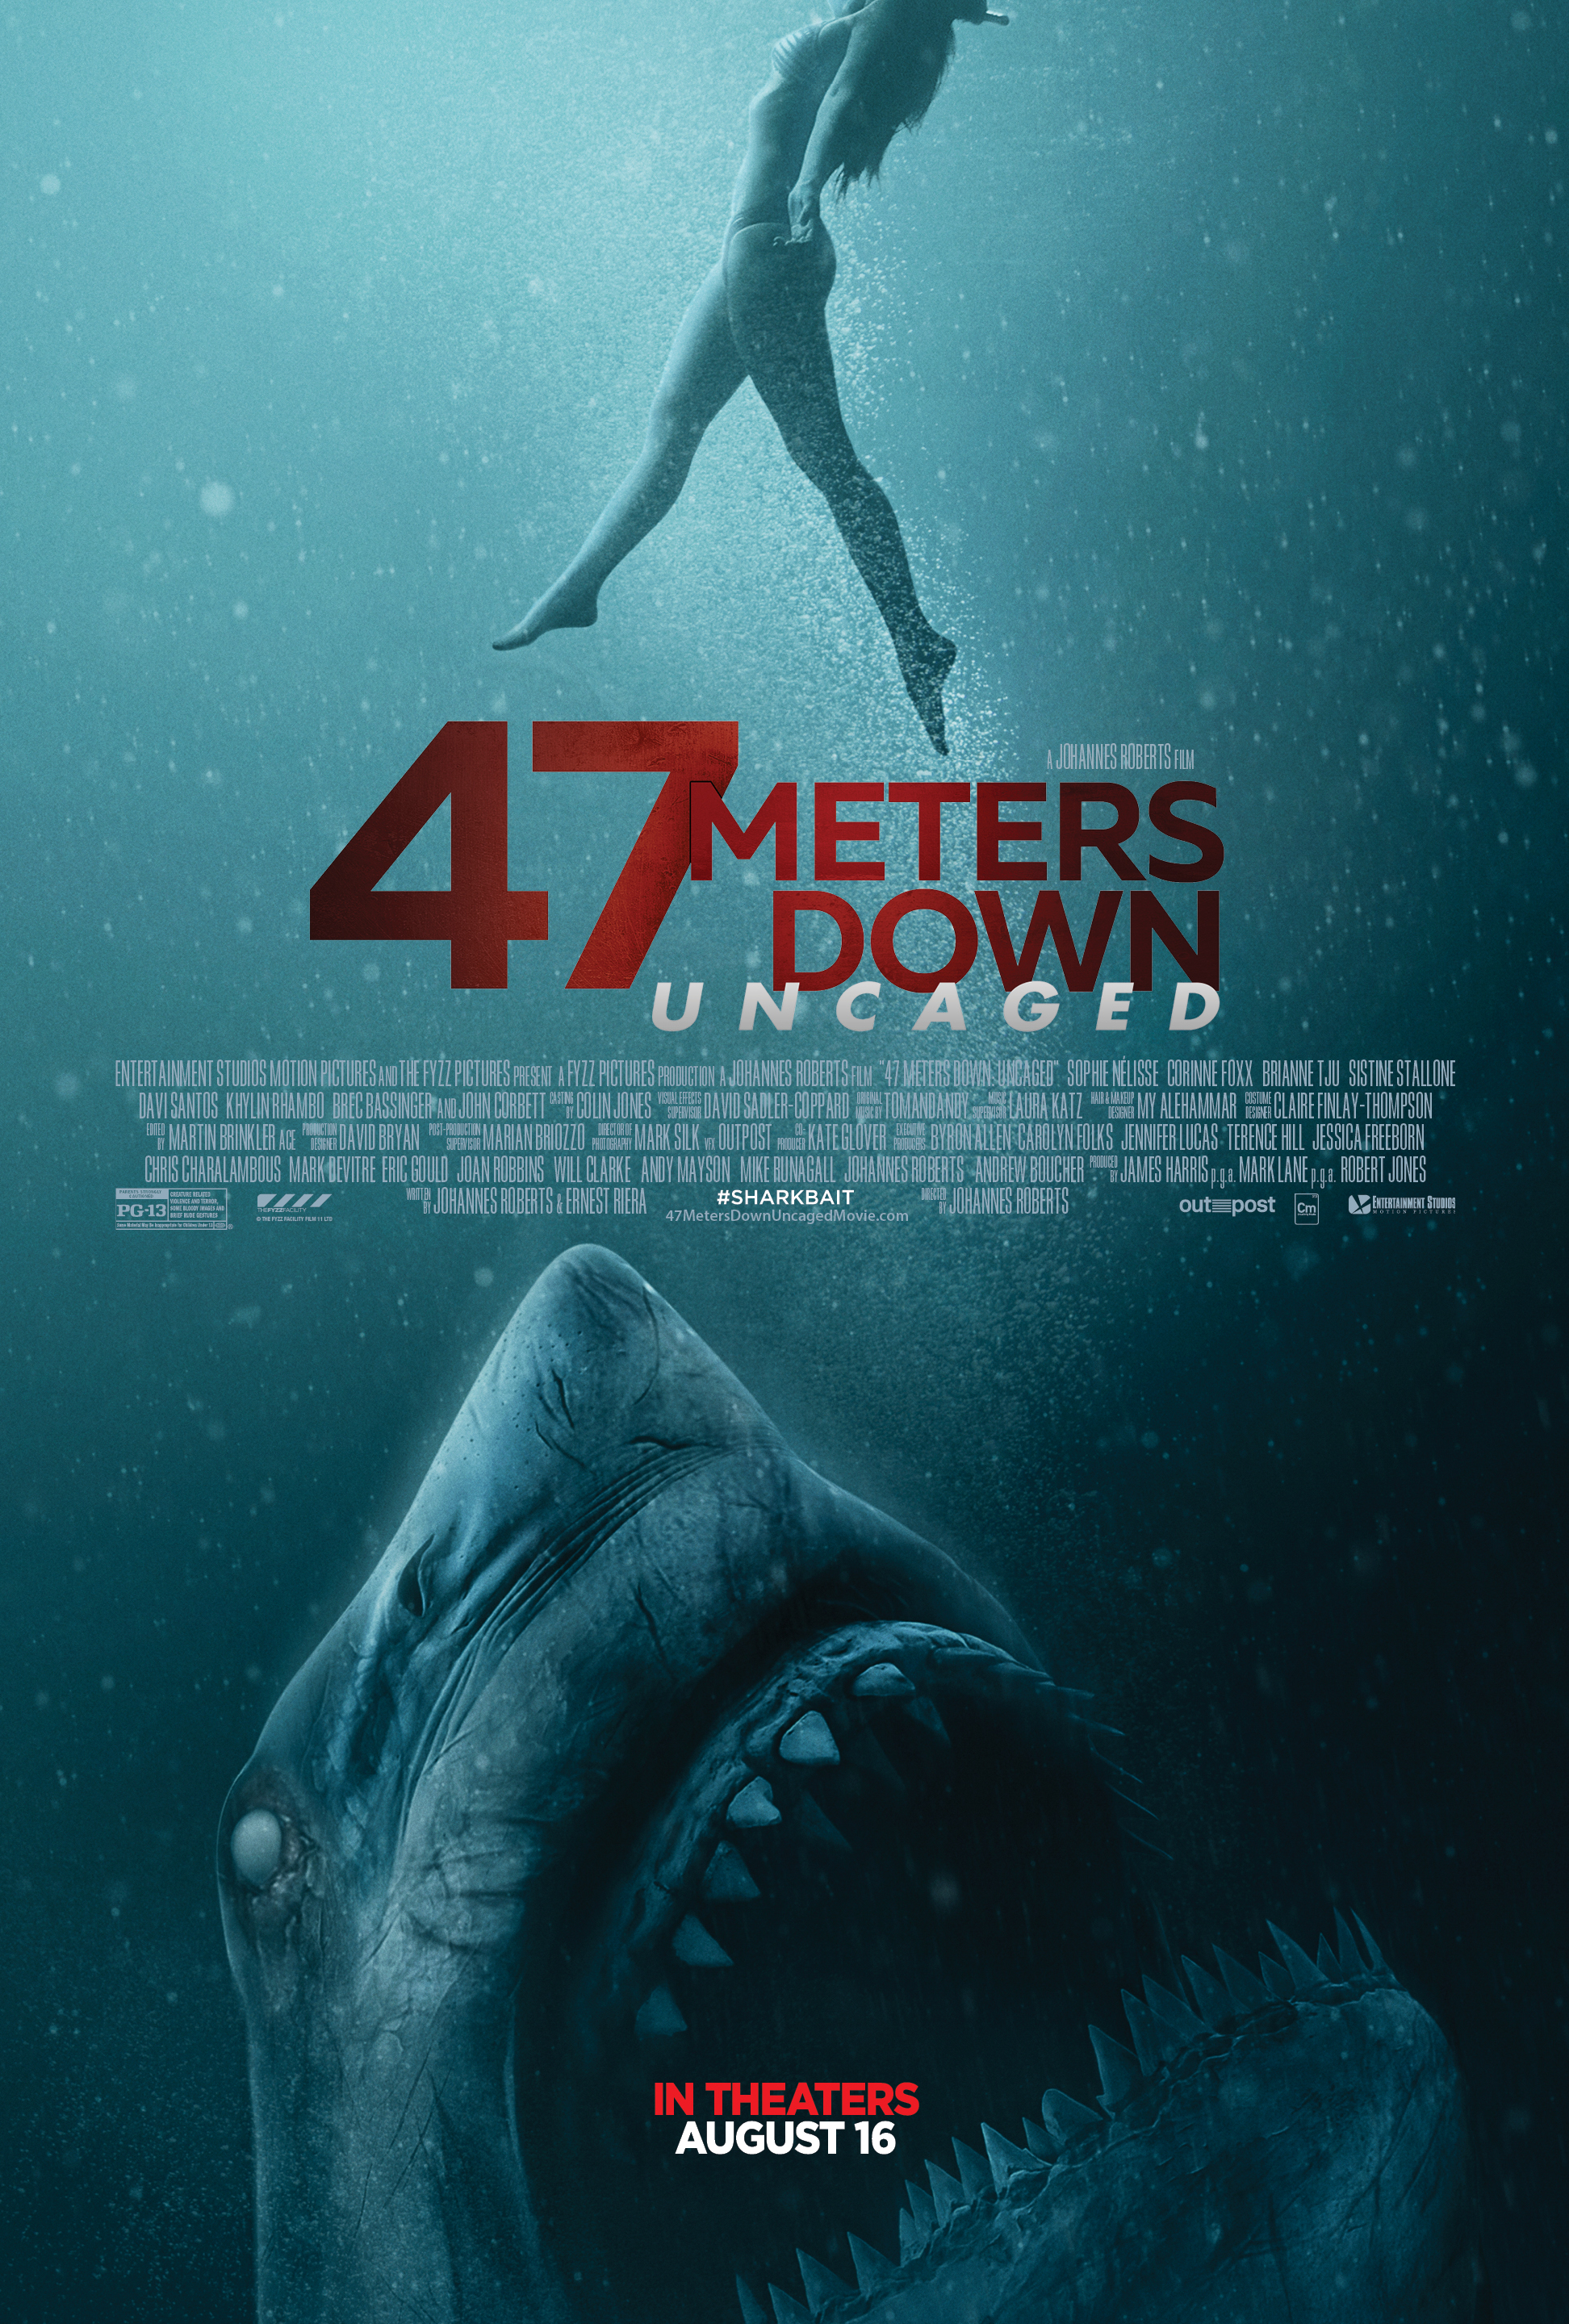 Image result for 47 meters down uncaged poster